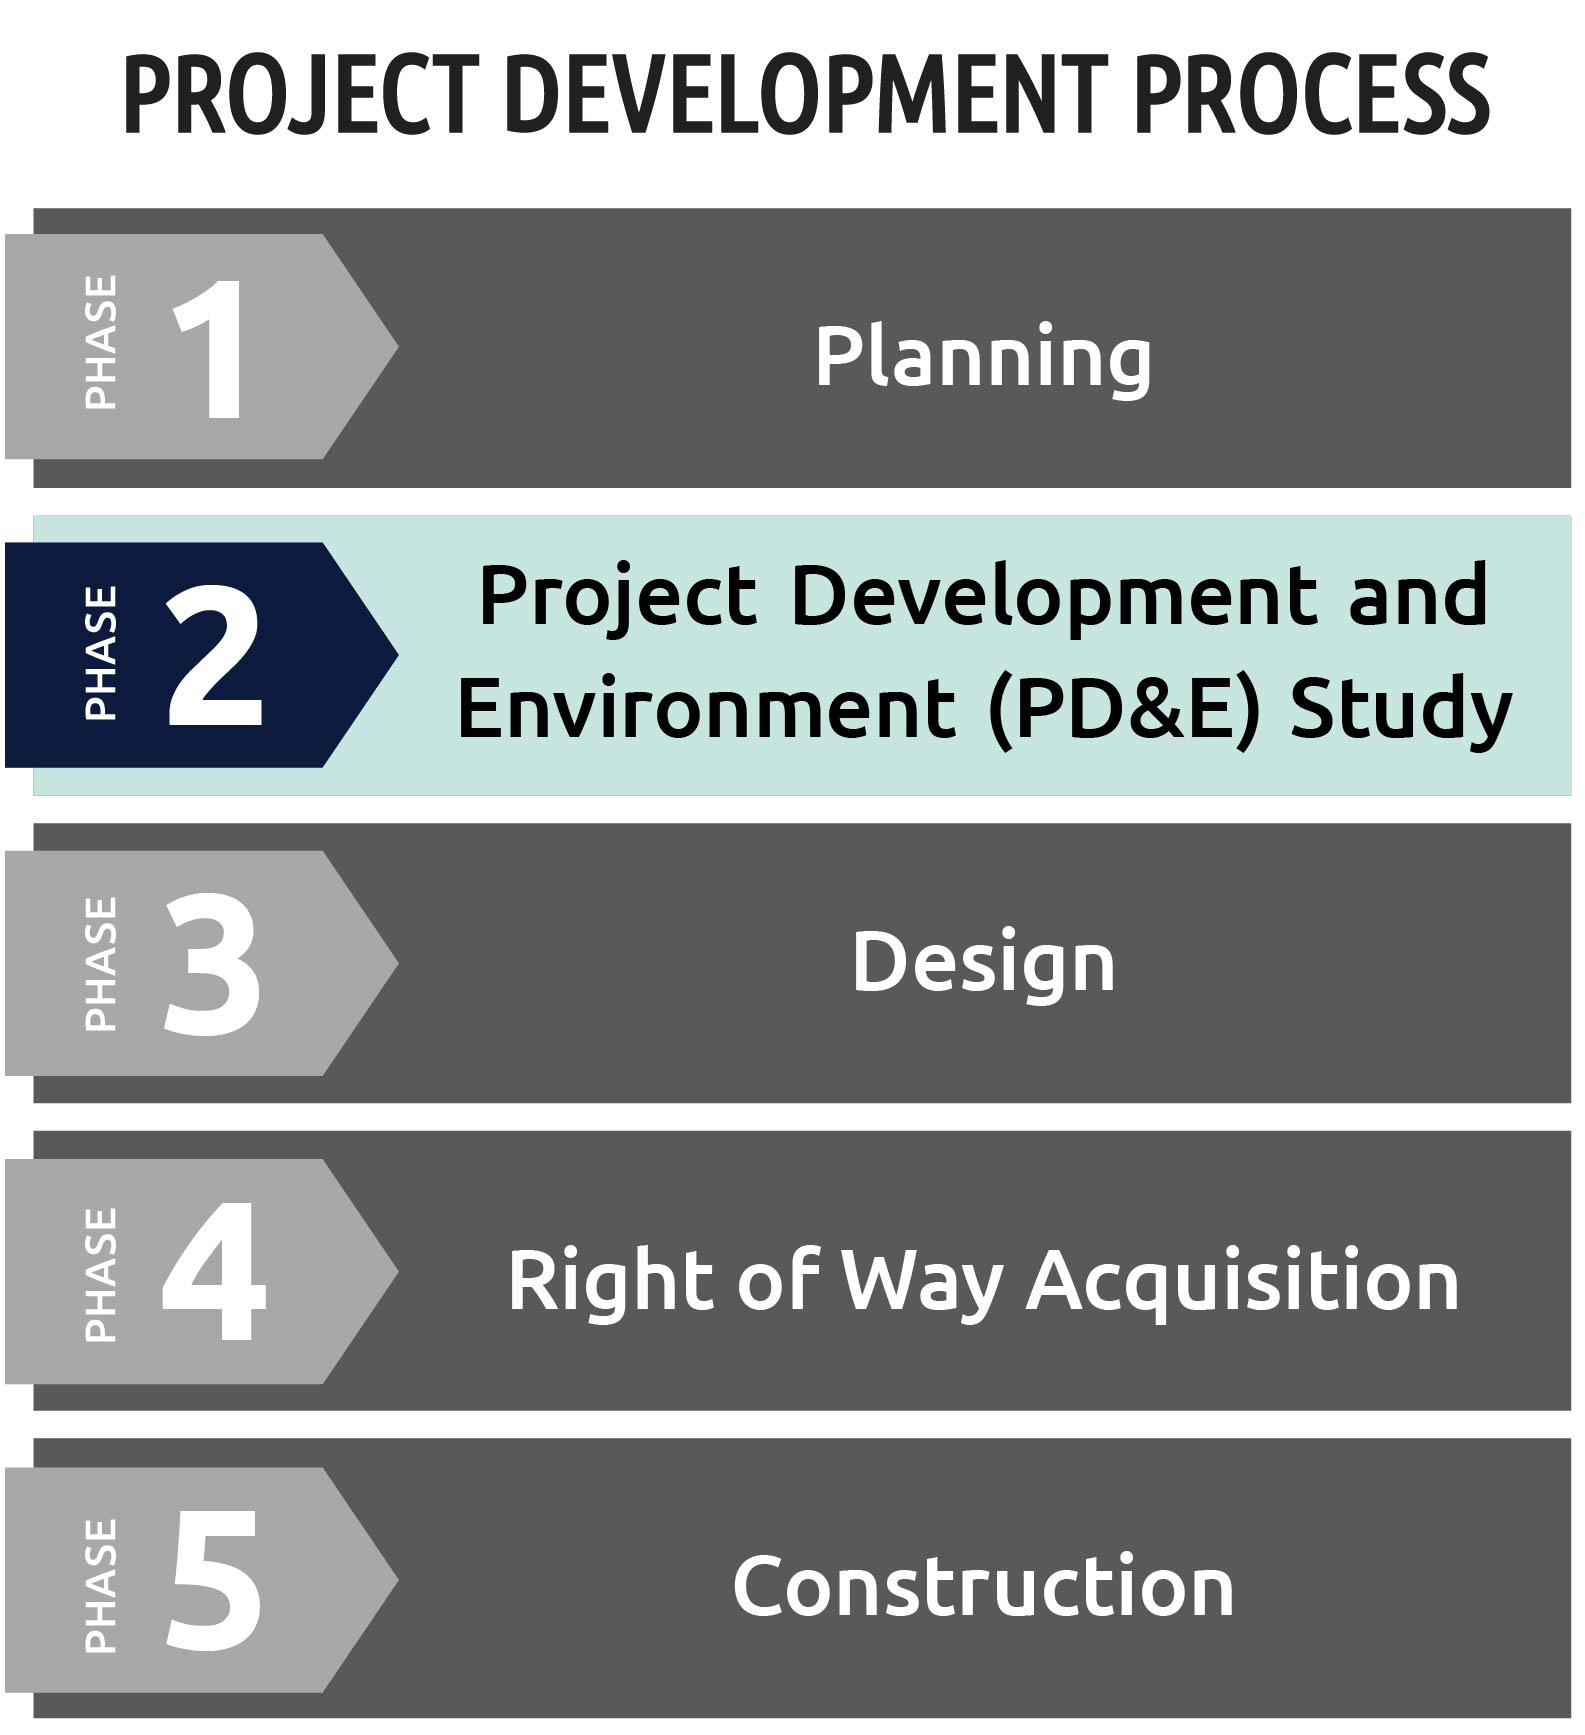 Project Development Process Graphic